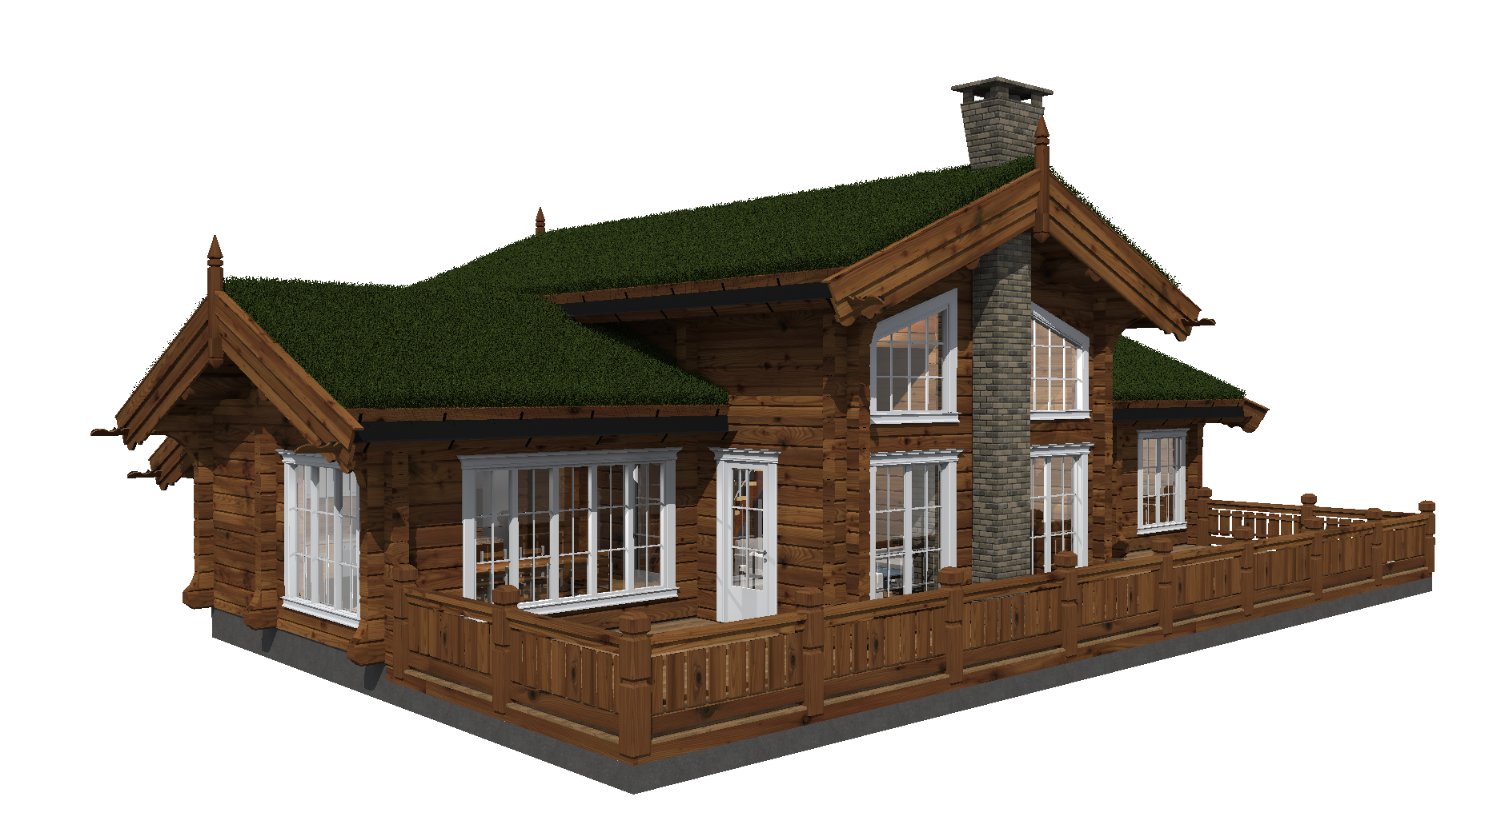 Linda Handmade Log Cabins From Latvia Your Dream Is Our